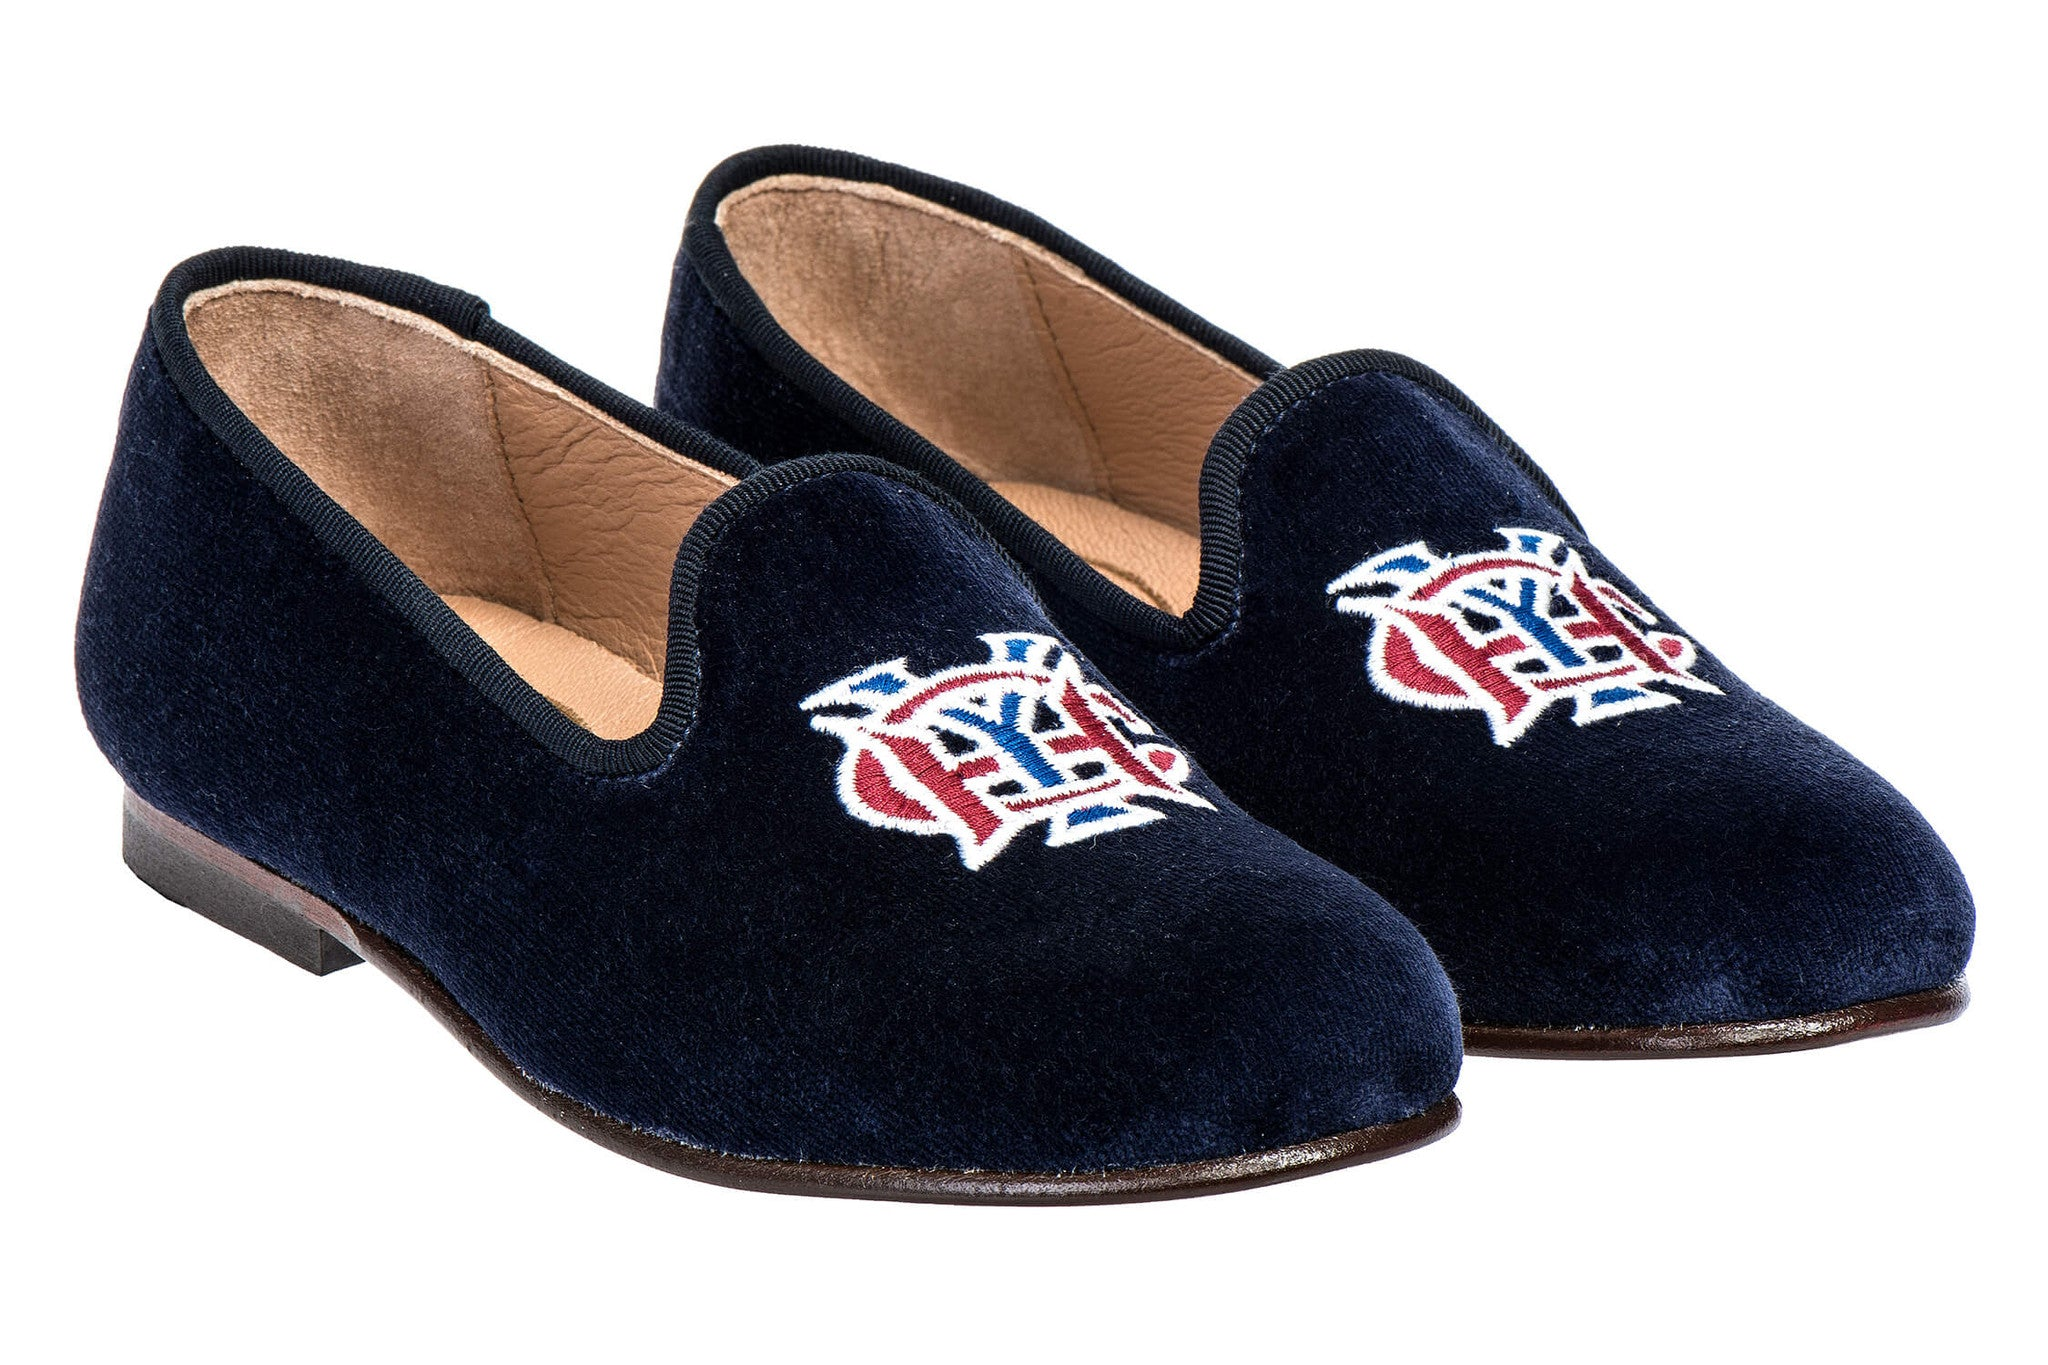 HYC Jr. Slipper